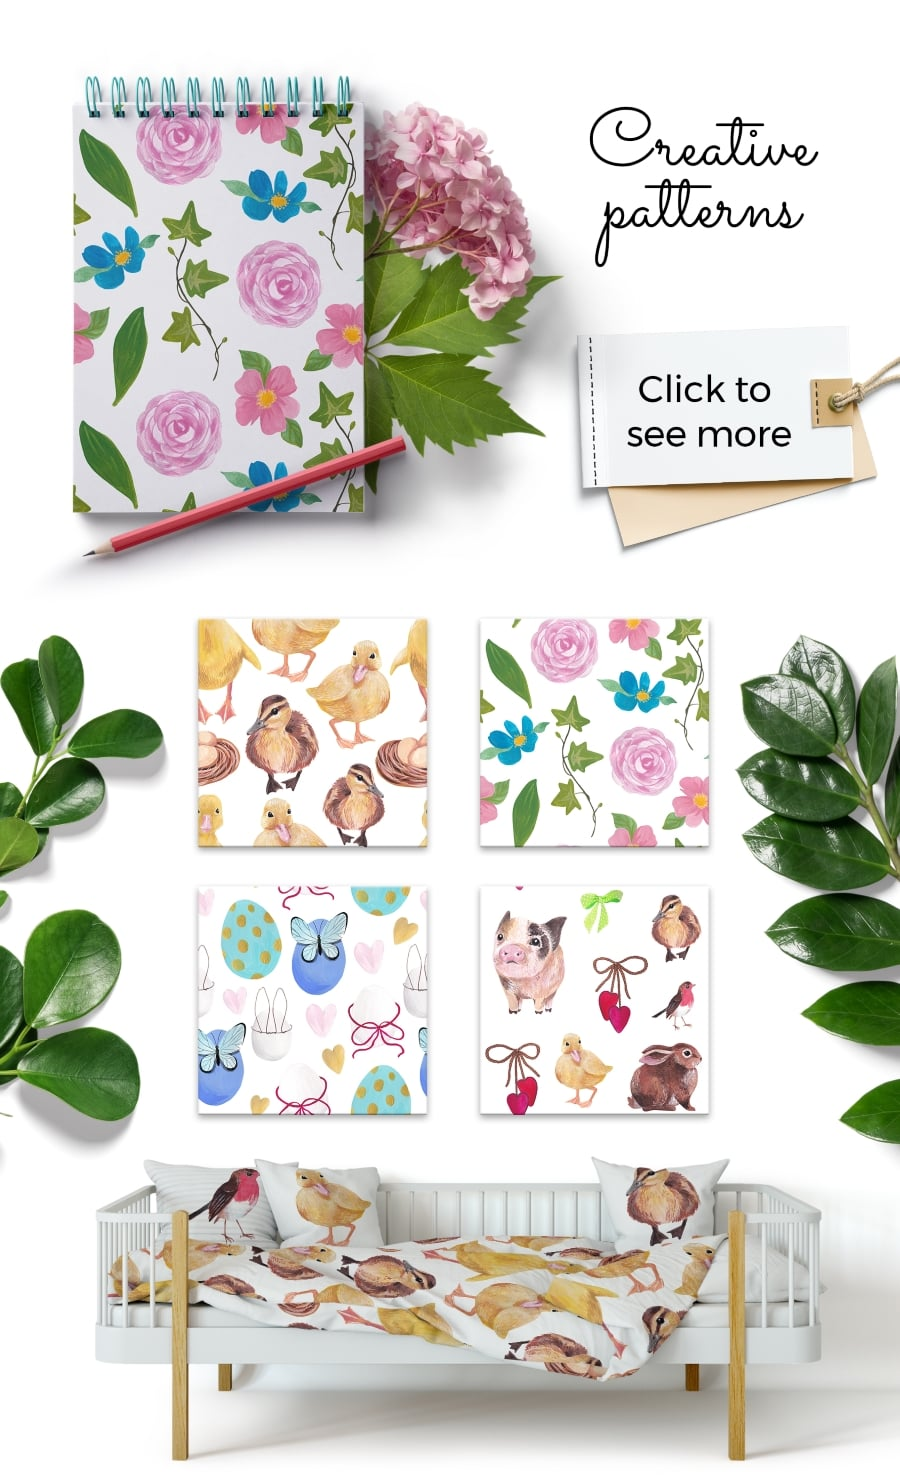 200+ Premium Easter Background in 2020: Free Vectors, Photos PSD files and Elements in Web Design - cuties prev4